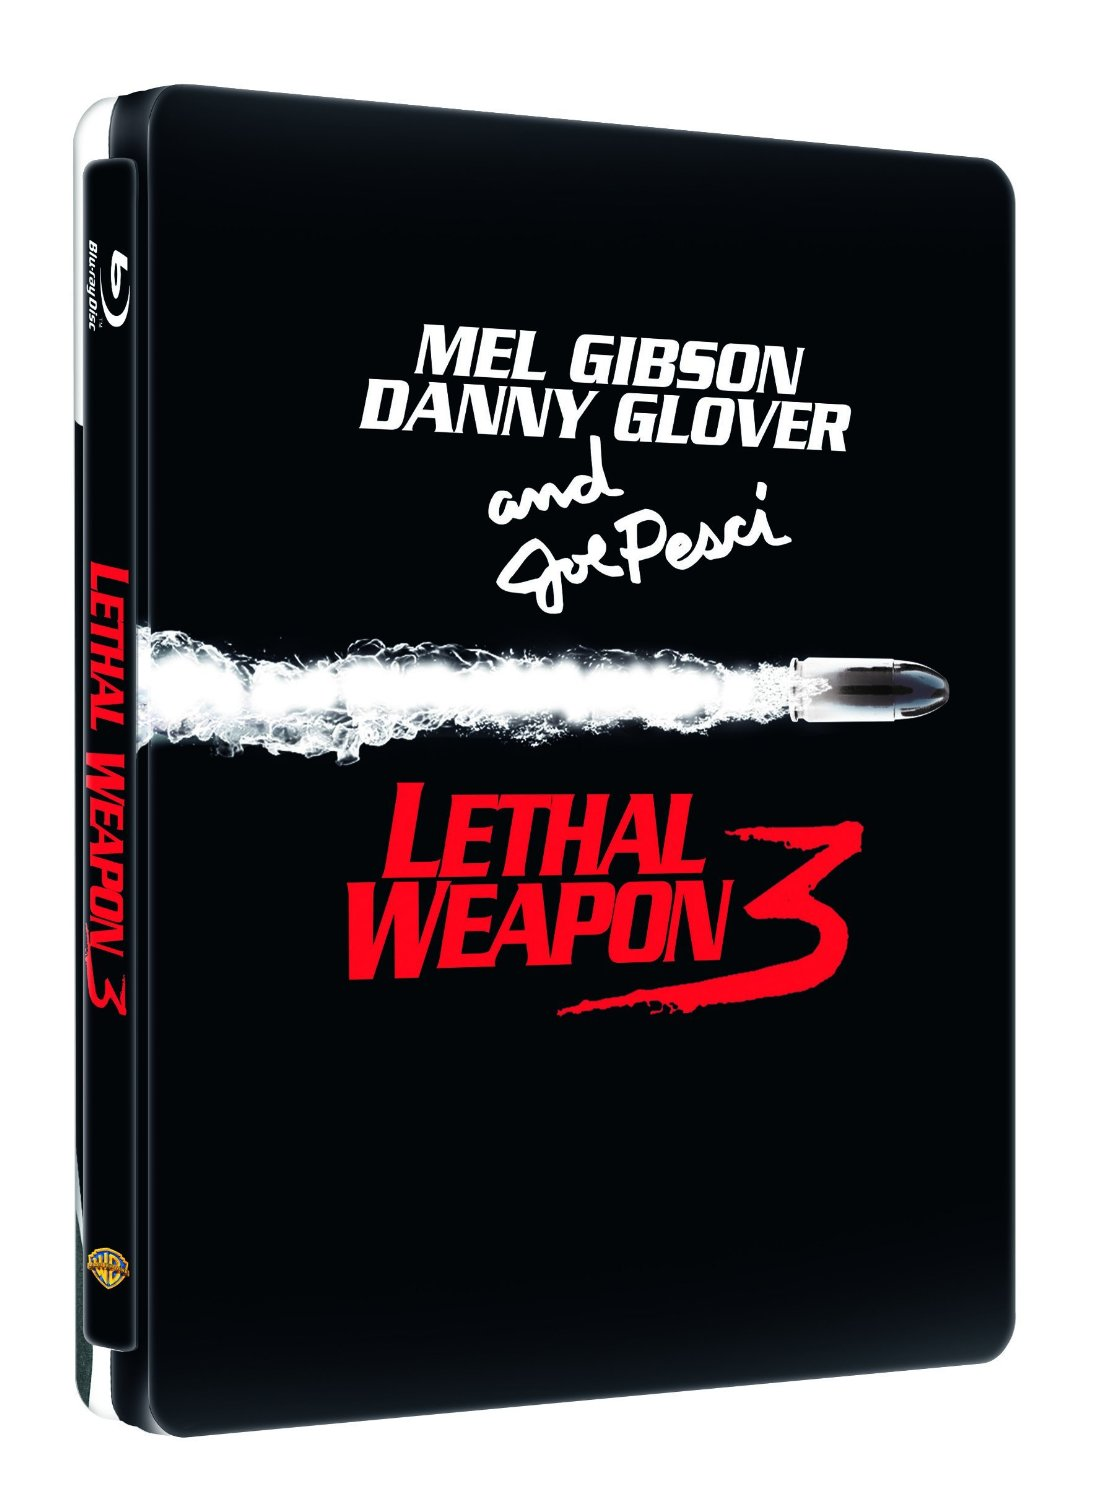 Lethal Weapon 3 steelbook fr